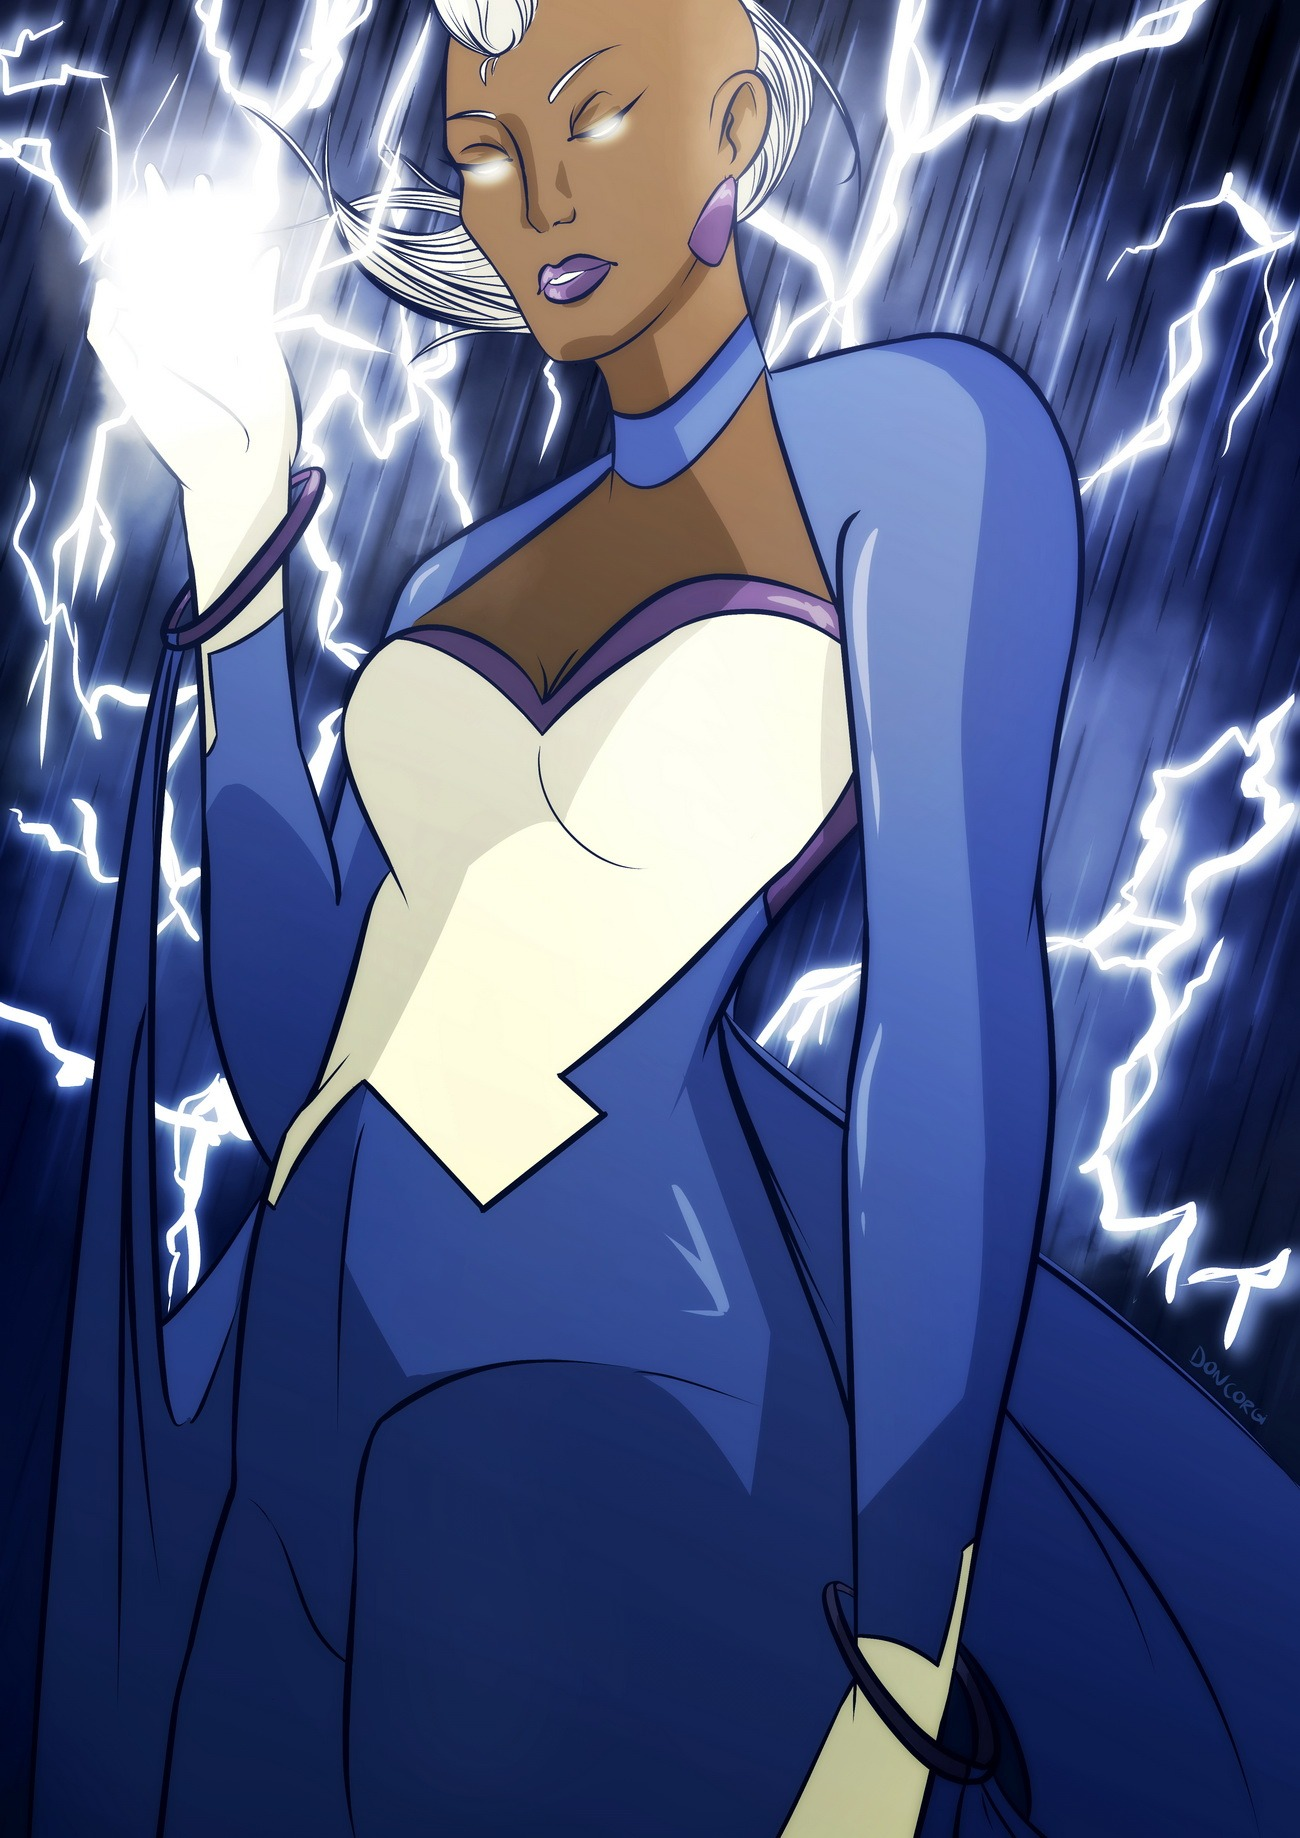 storm xmen, fanart, fan art, digital painting, marvel comics, illustration, wild, badass